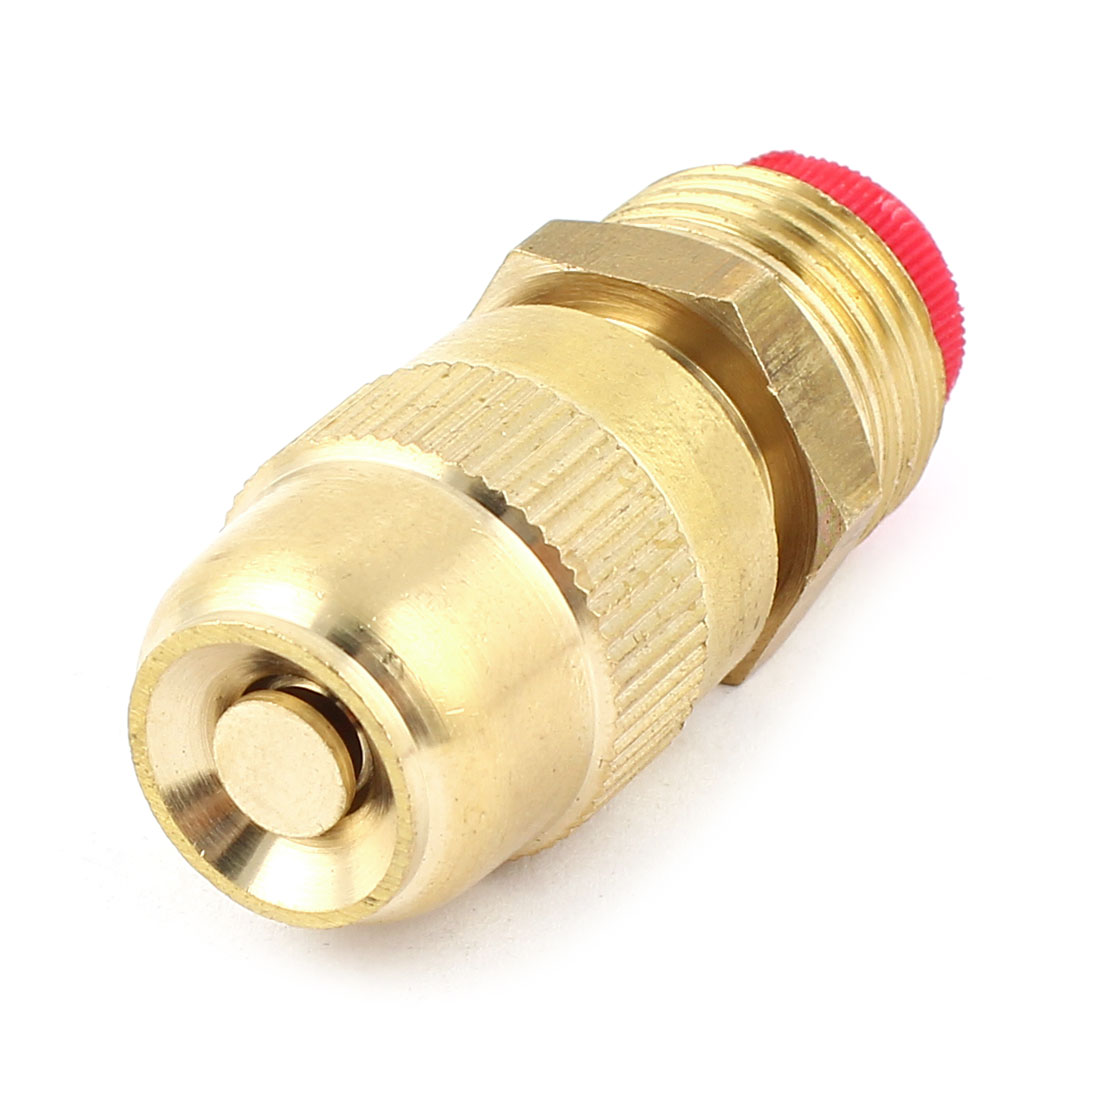 1/2PT Male Threaded Brass Water Hose Spray Nozzle Gold Tone for Gardening